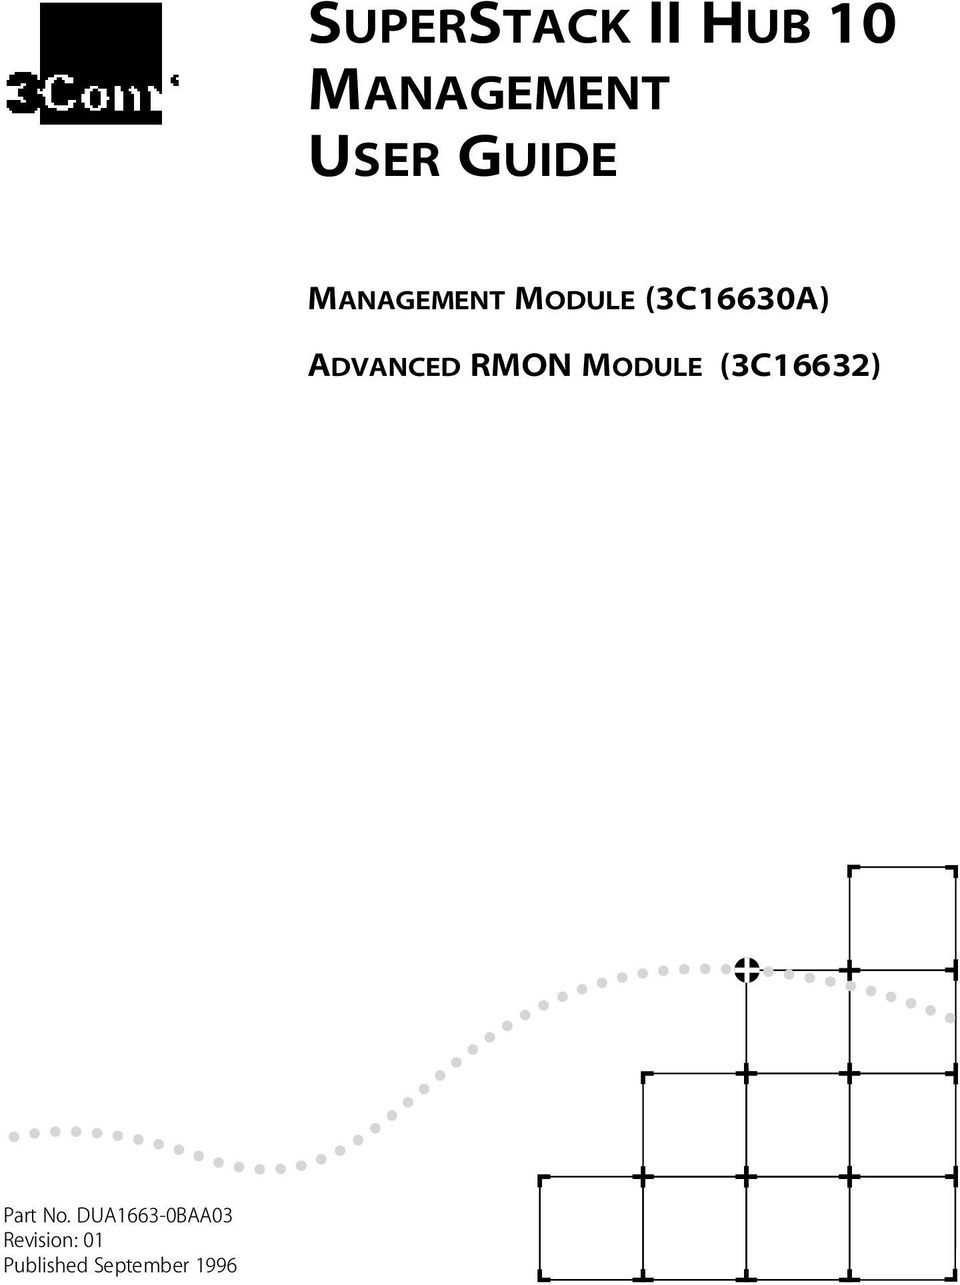 ADVANCED RMON MODULE (3C16632) Part